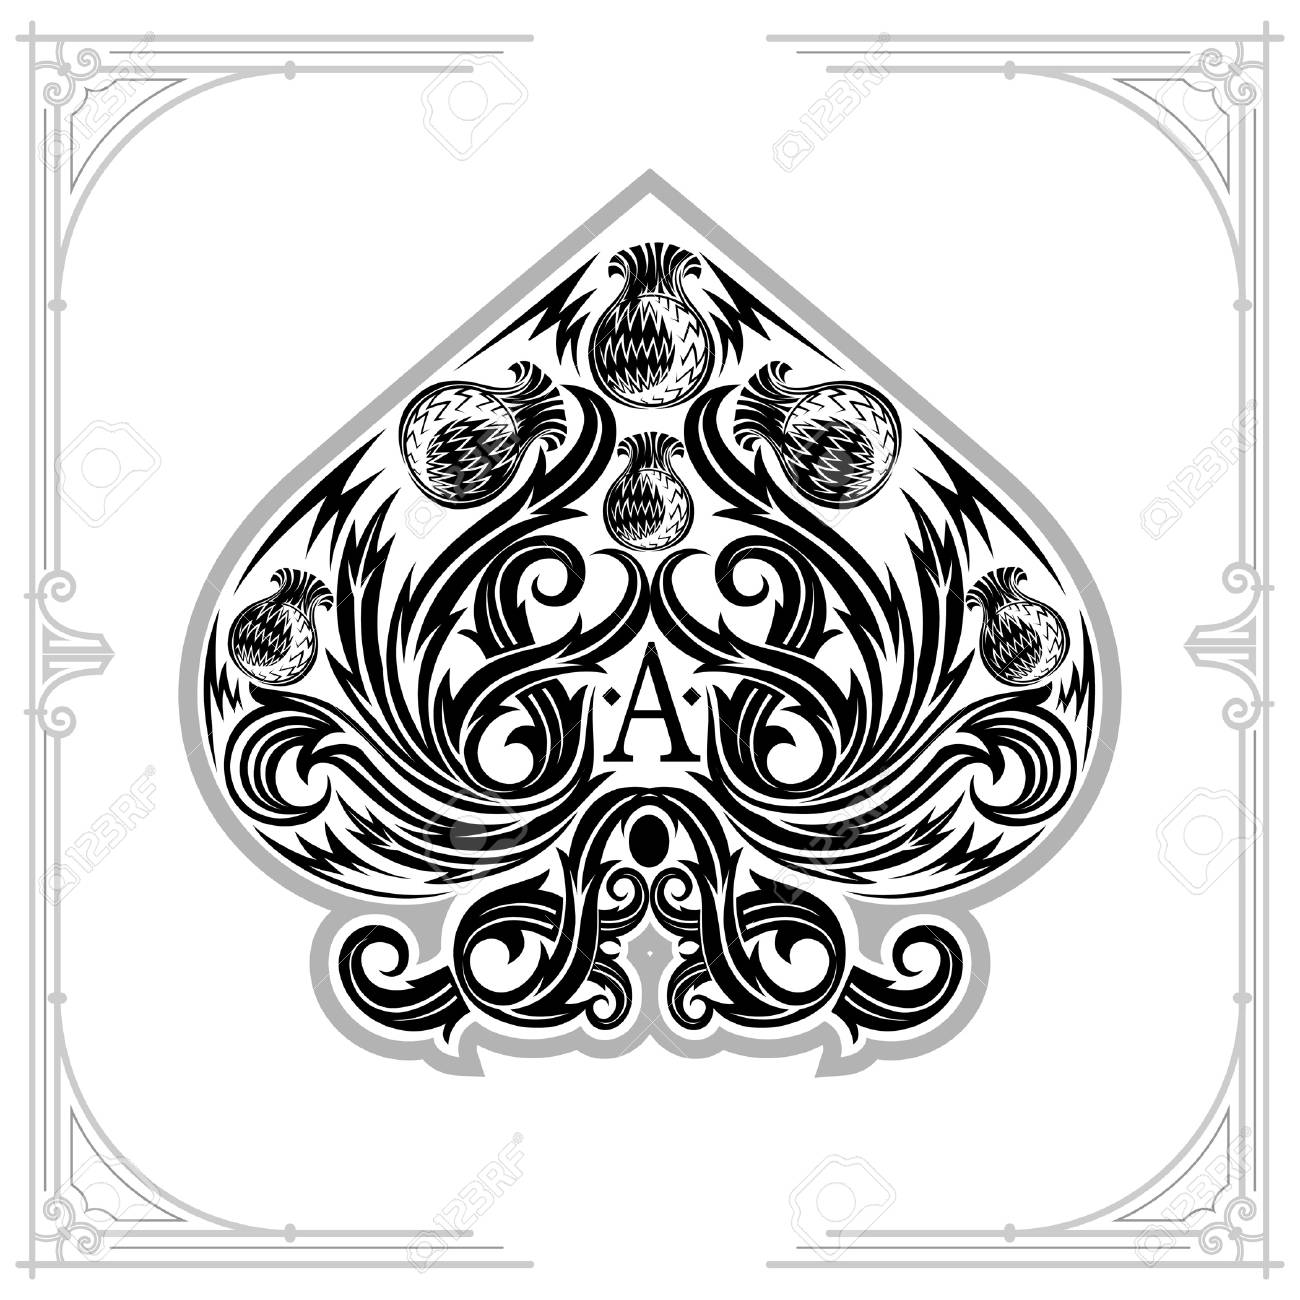 Ace of spades from thistle pattern inside black on white stock vector 95247941